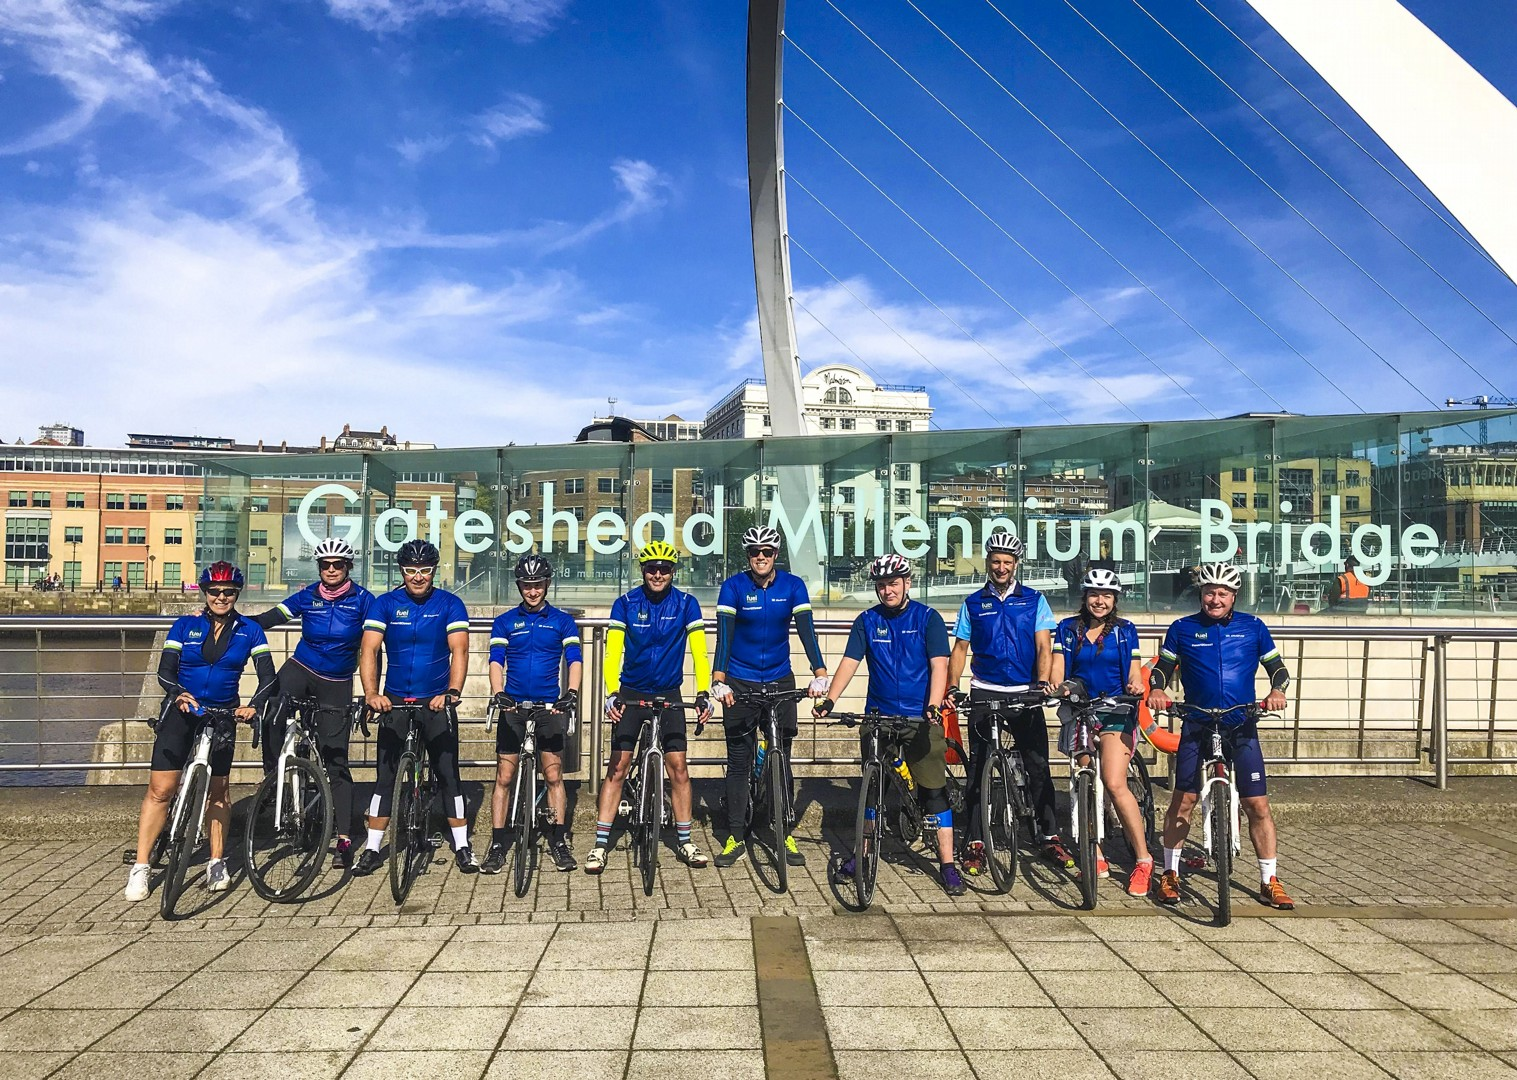 newcastle-cycling-tour-from-whitehaven-self-guided-4-days.jpg - UK - C2C - Coast to Coast 4 Days Cycling - Self-Guided Leisure Cycling Holiday - Leisure Cycling